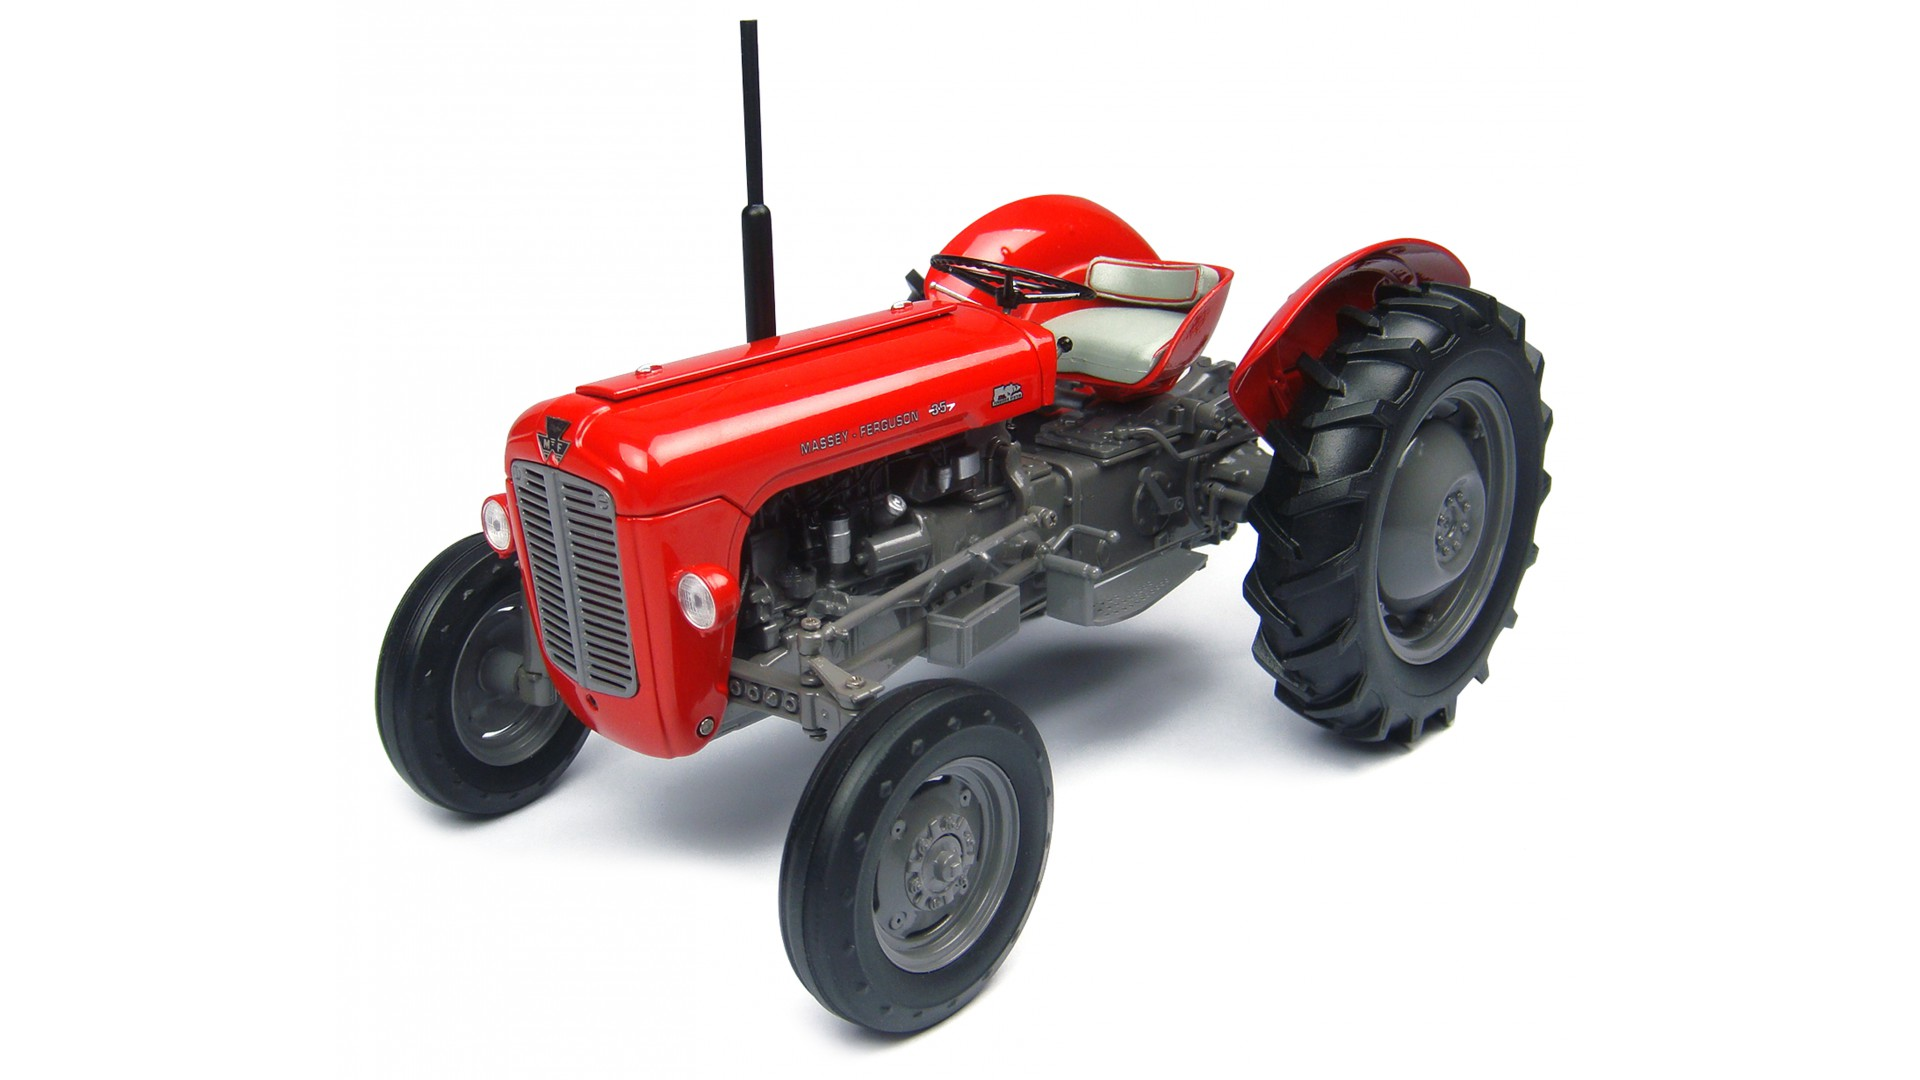 TYM T254 (GEAR / HST) Compact Utility Tractor Price Specs